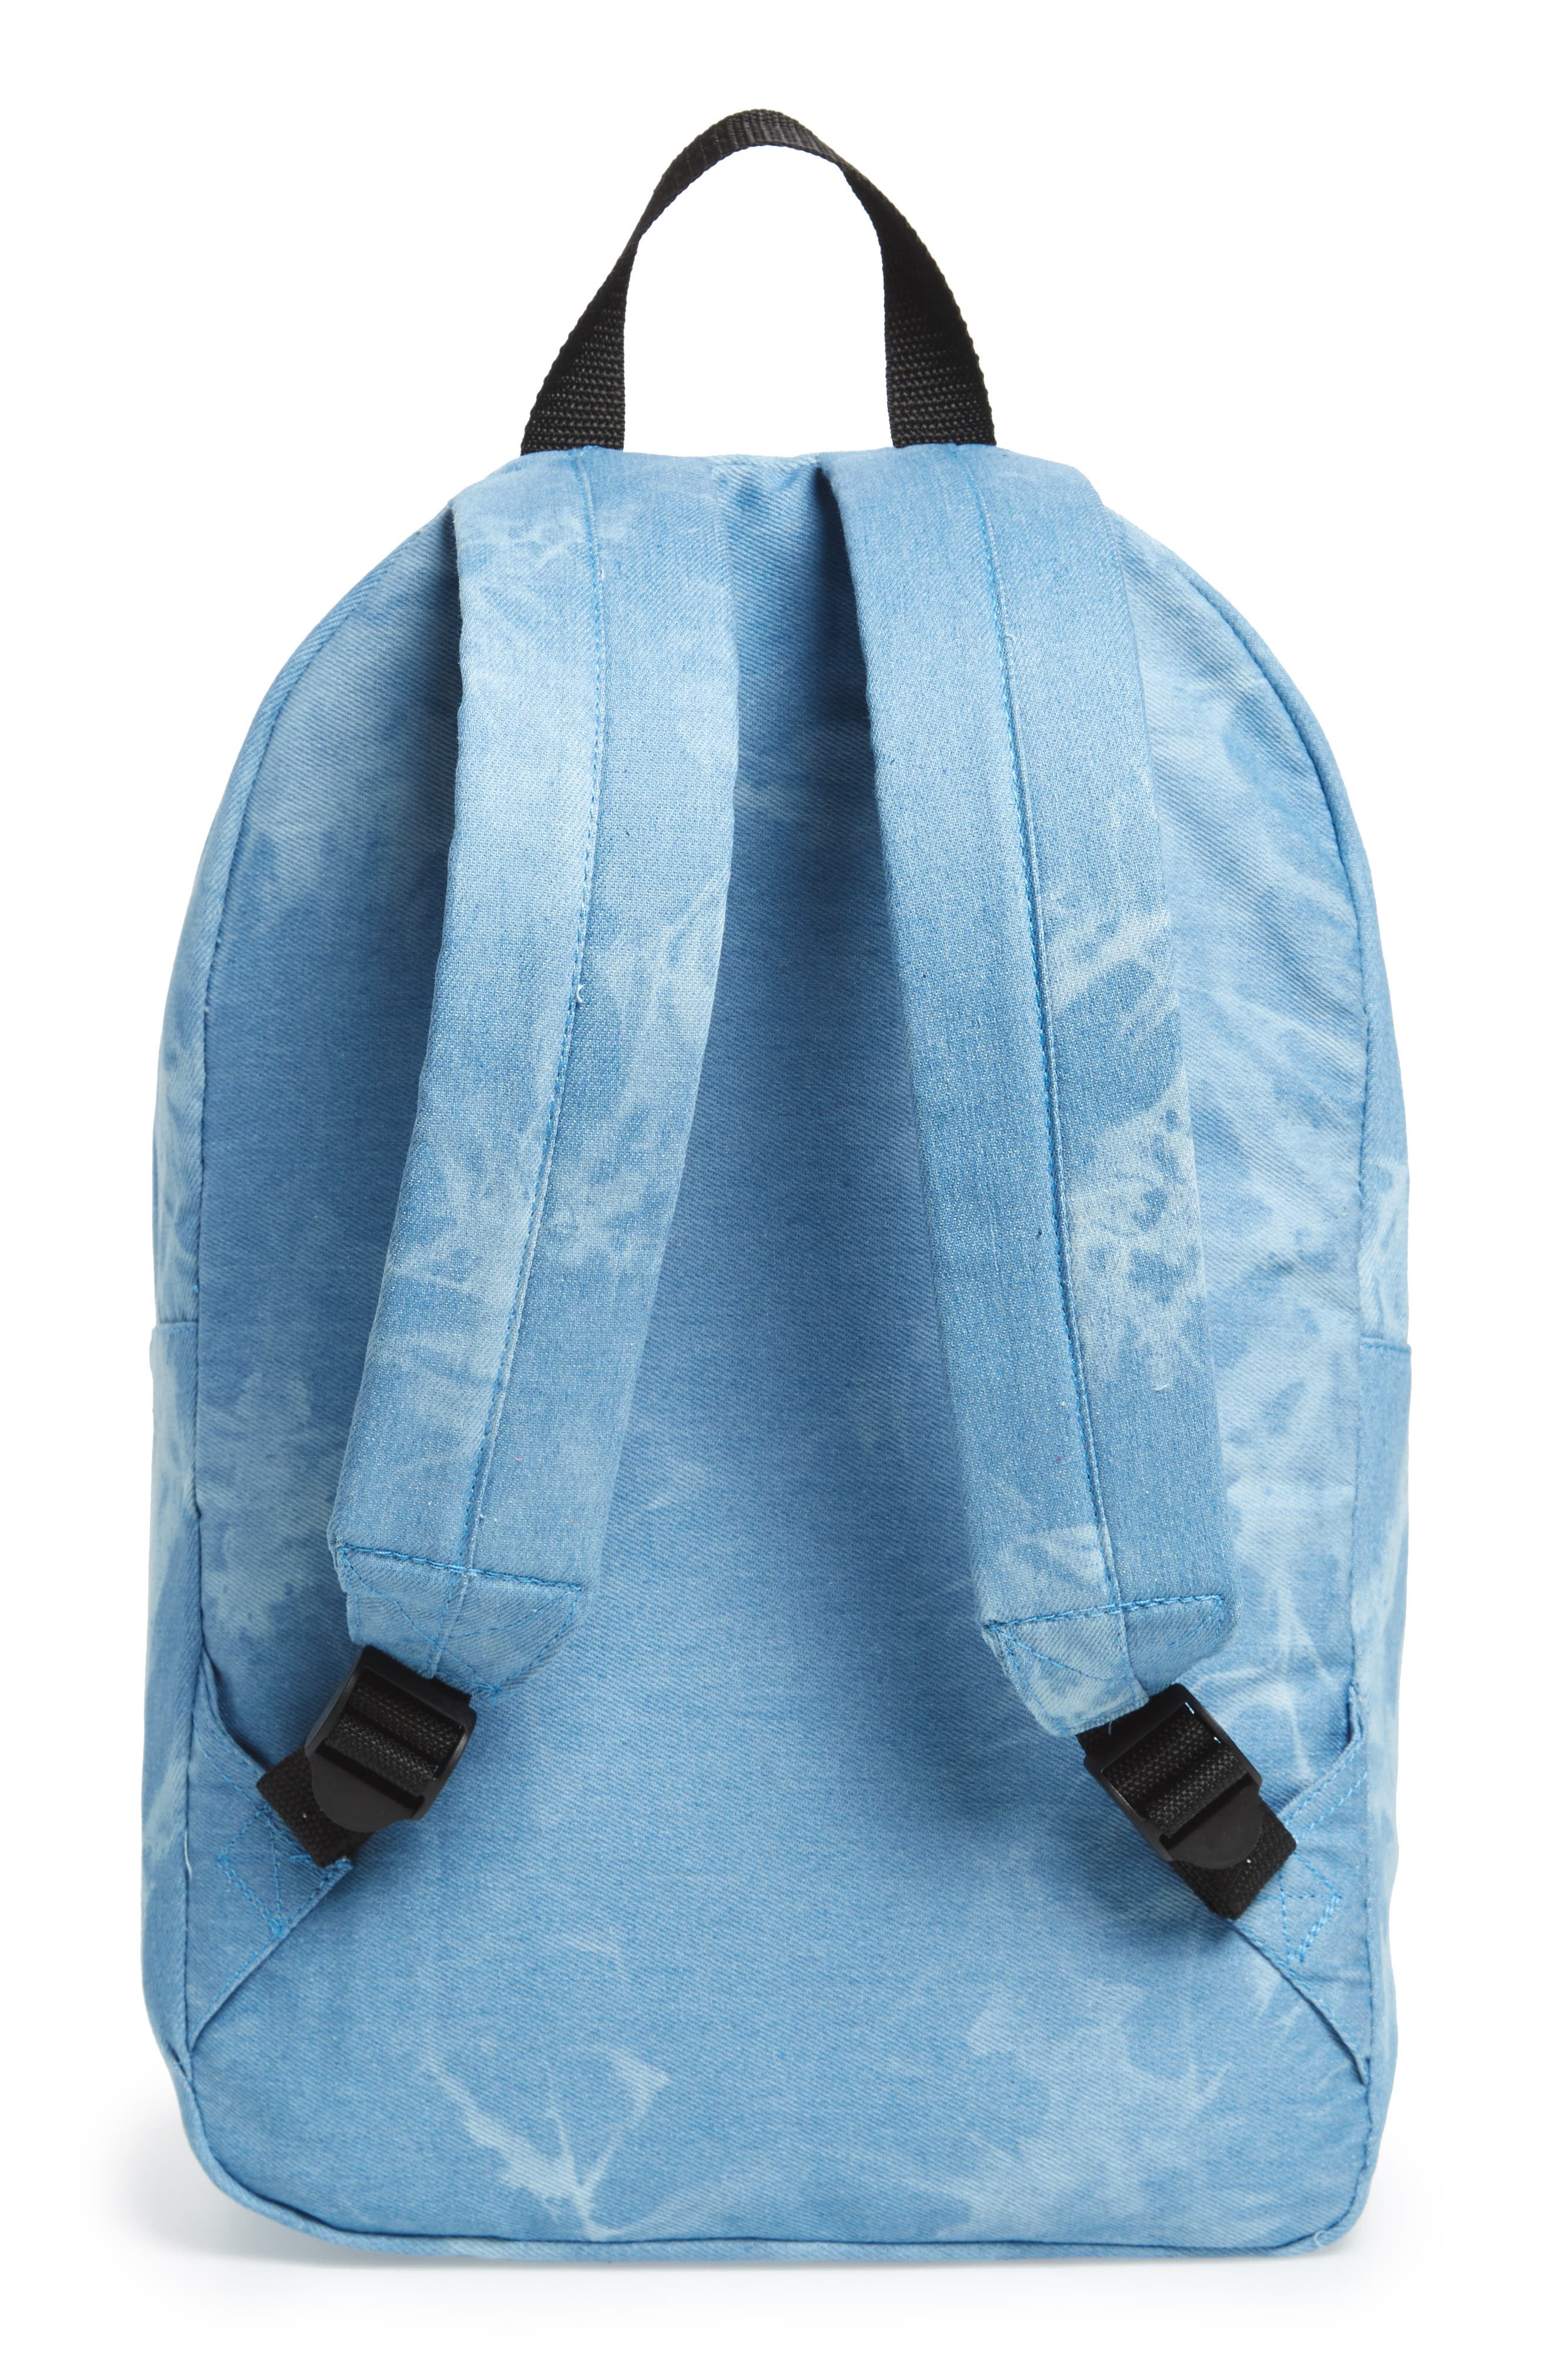 Accessory Collective Tie Dye Backpack,                             Alternate thumbnail 2, color,                             Blue